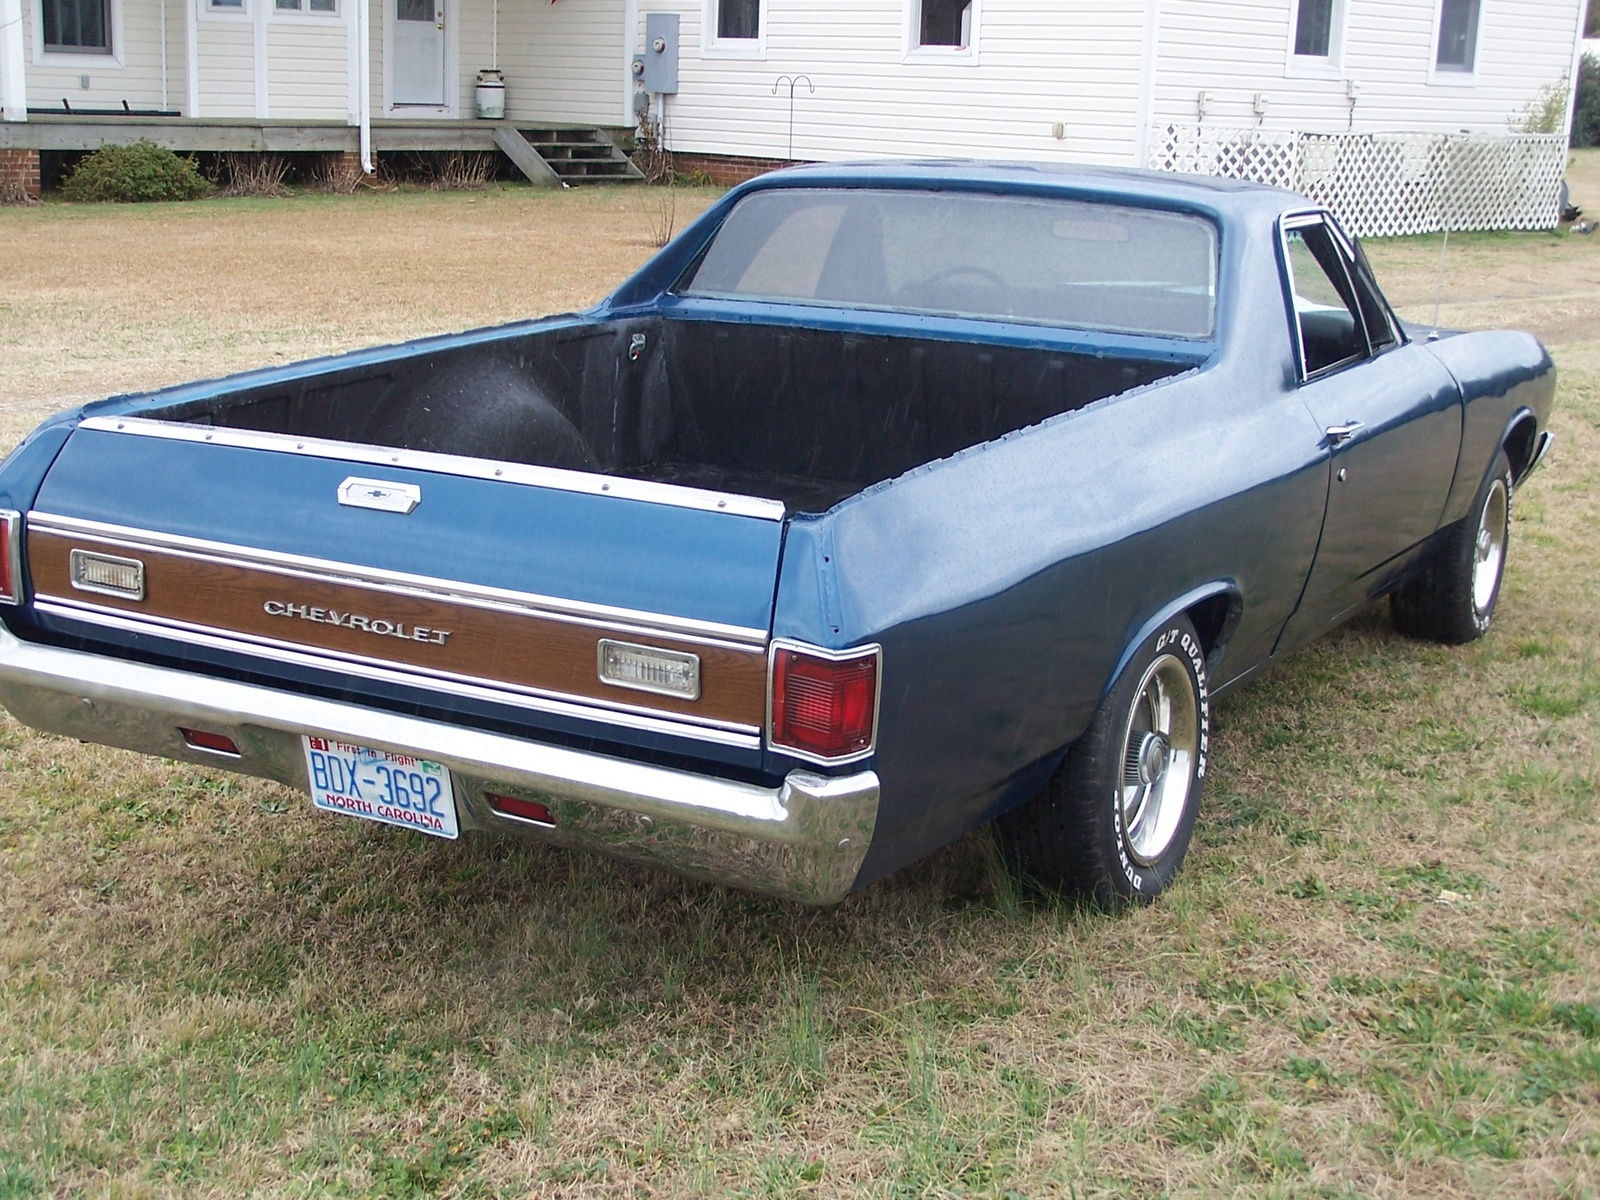 Chevrolet El Camino Questions Are There Any Production Numbers